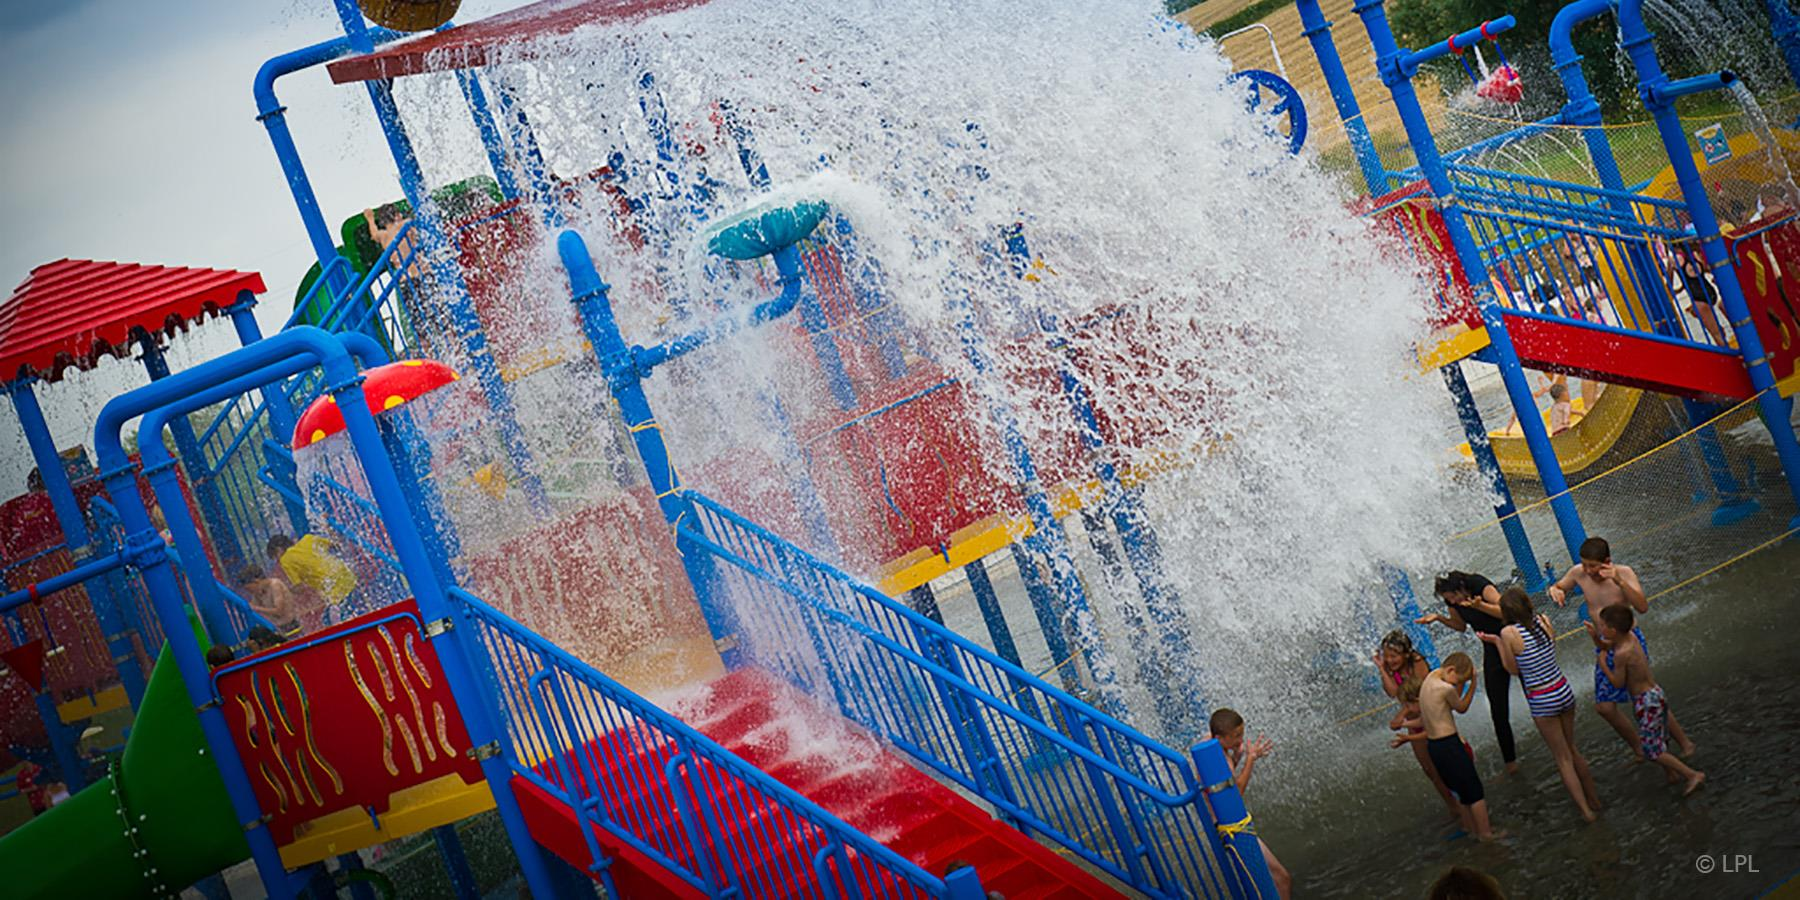 Twin Lakes theme park, Leicestershire